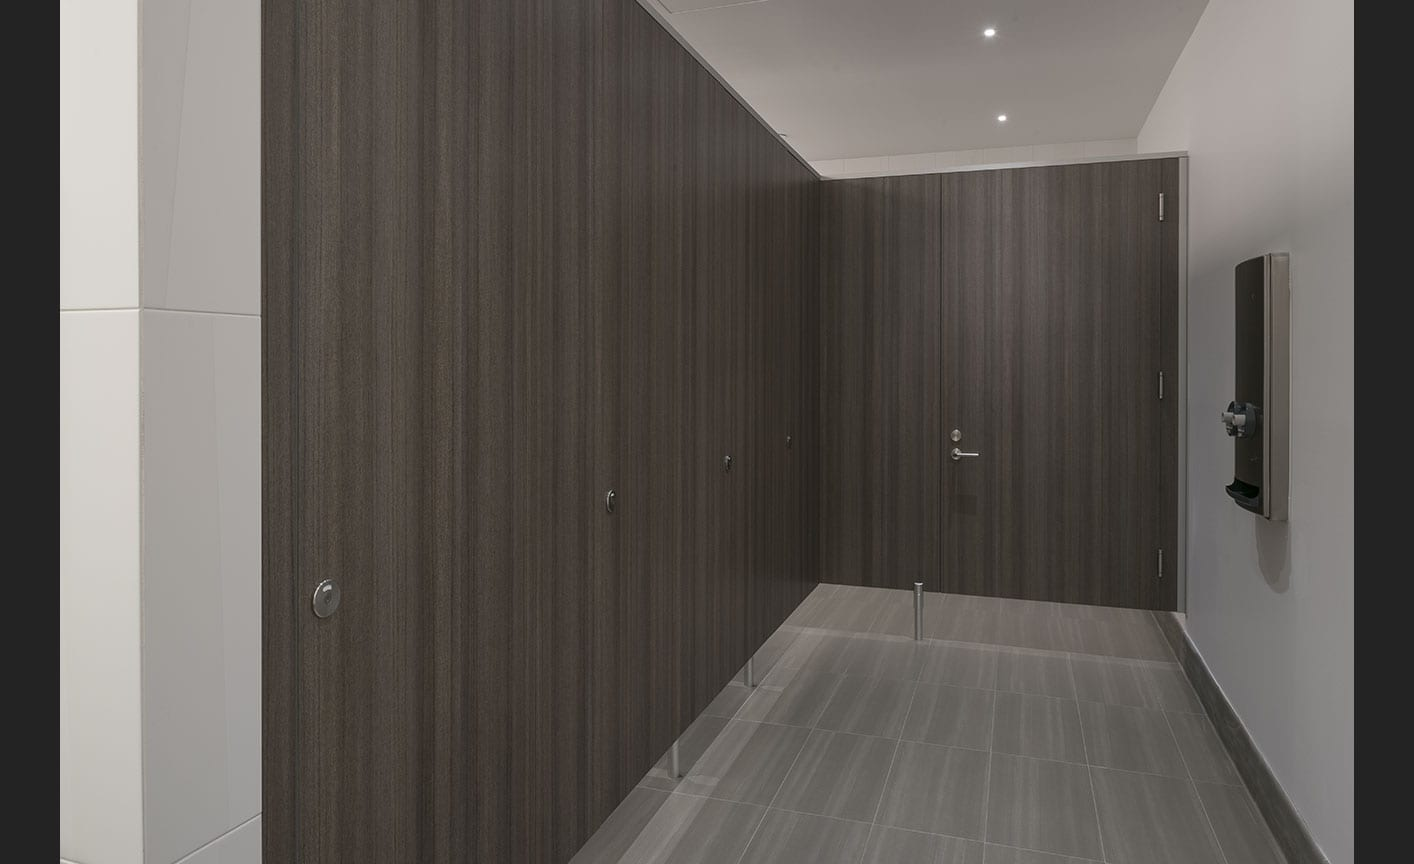 Privada Toilet Partitions Photo